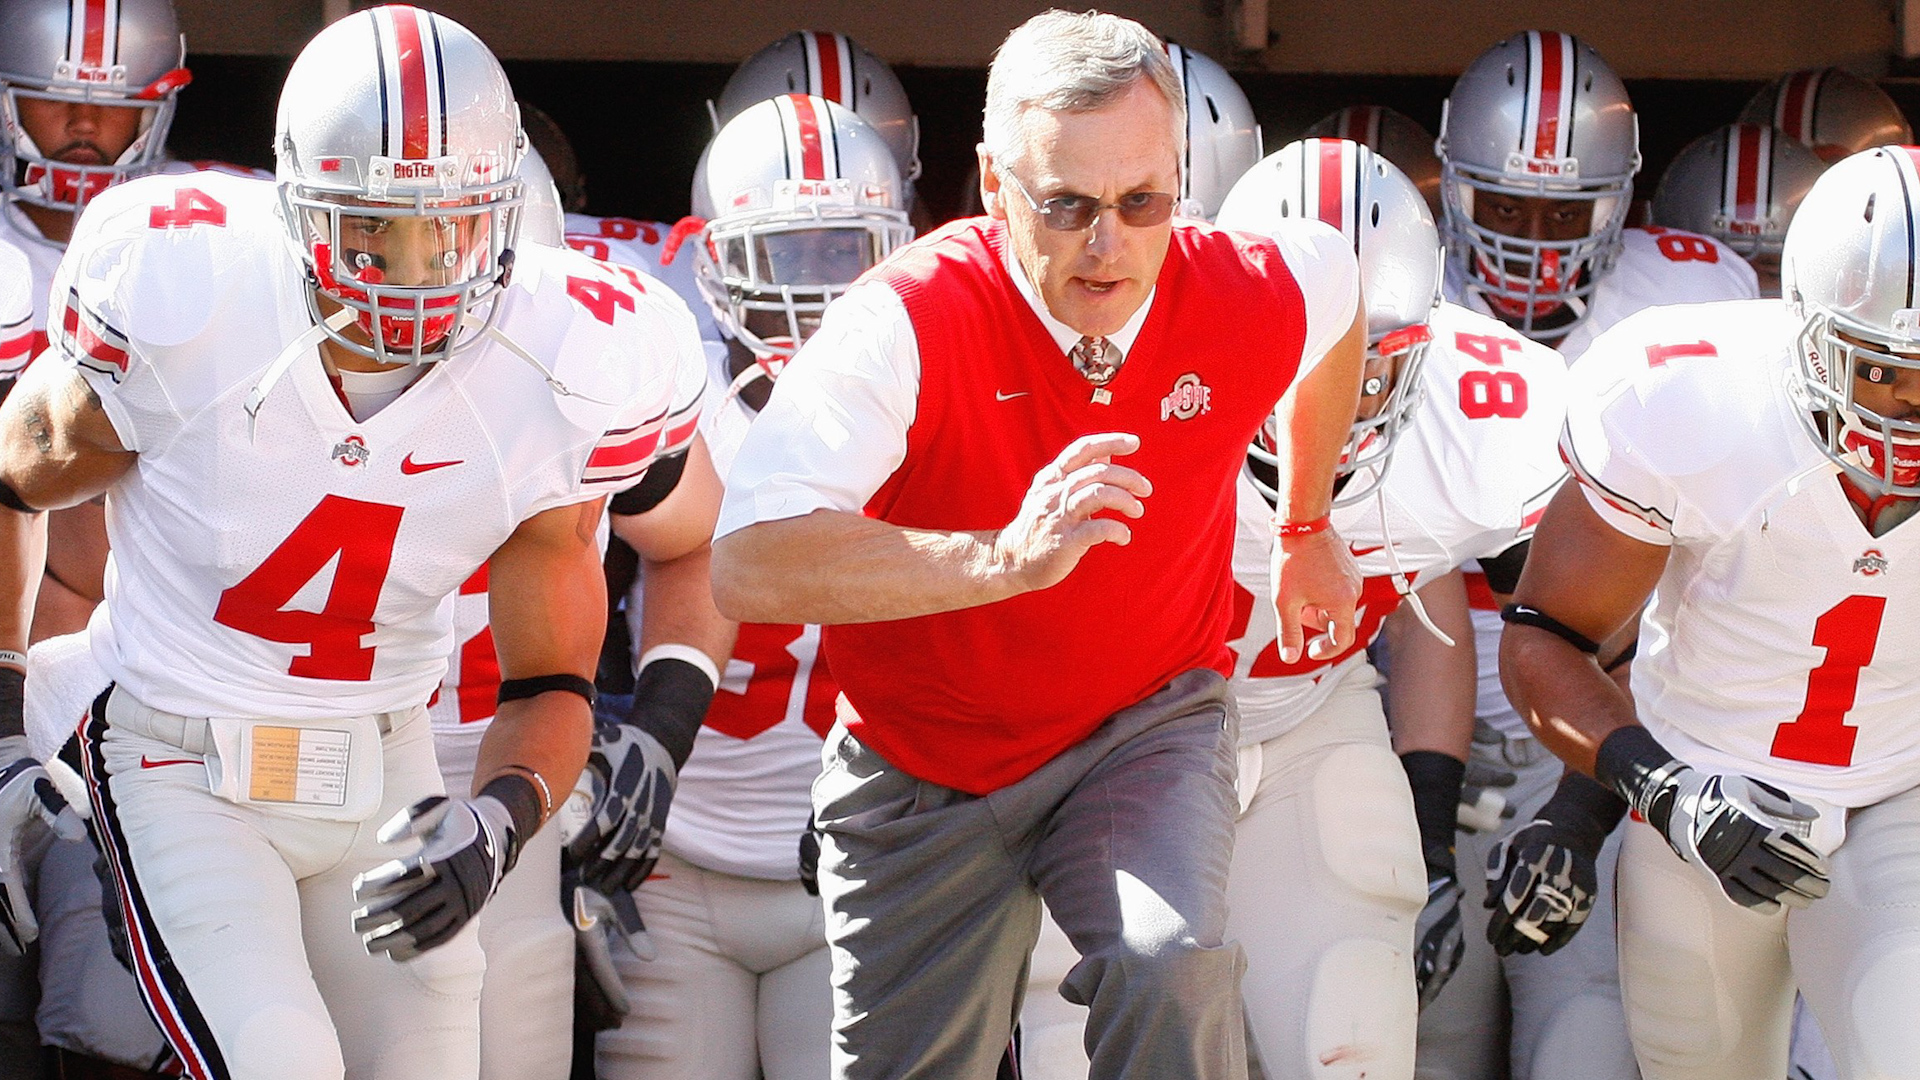 Former Ohio State University head coach Jim Tressel scouts the five players playing in Super Bowl 50 that he recruited during his time at OSU.